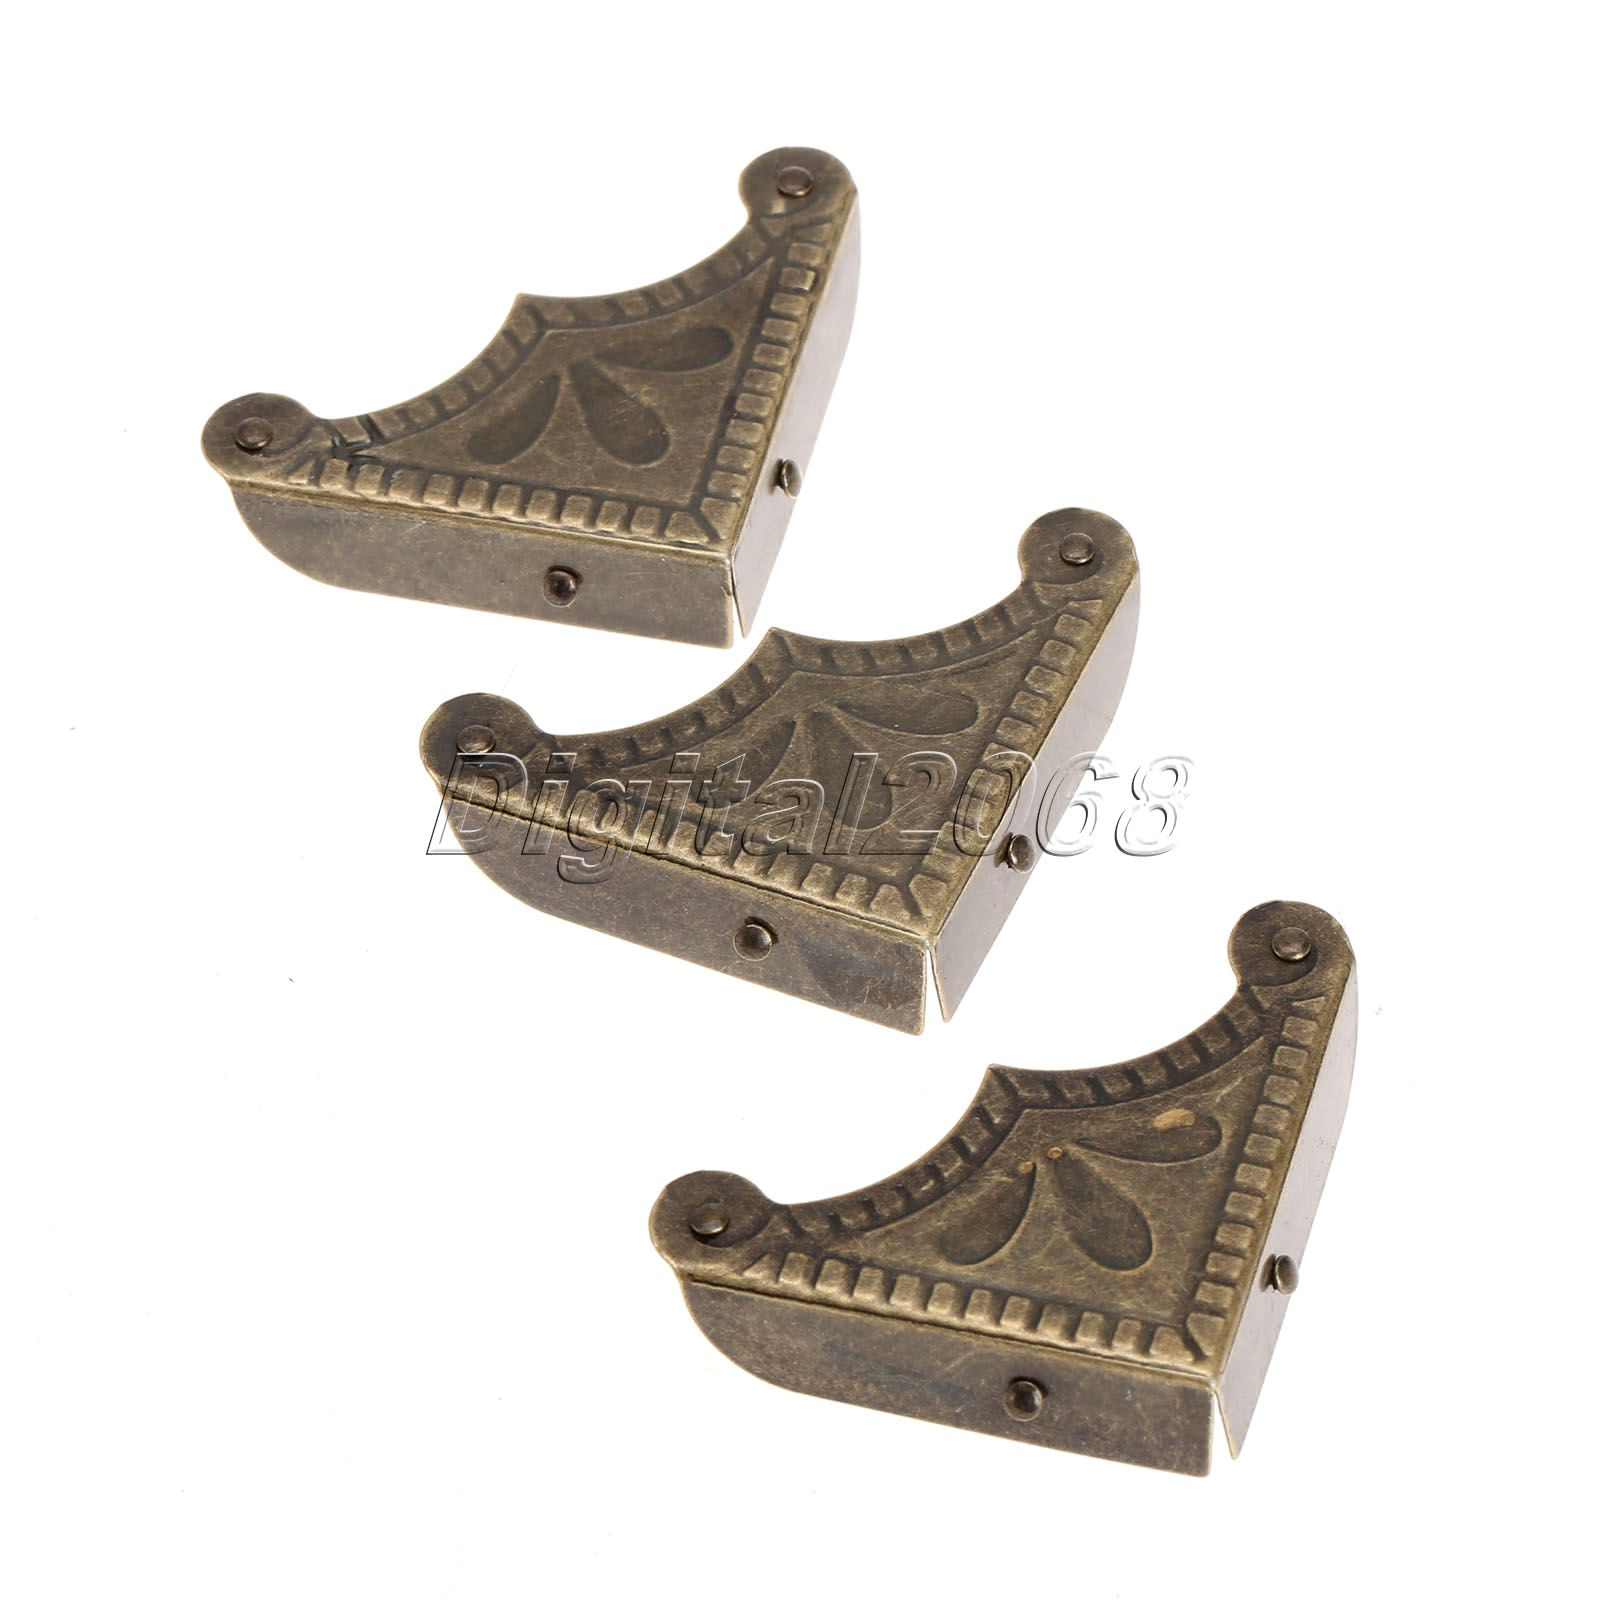 hot-sale-12pcs-corner-brackets-antique-brass-jewelry-wine-gift-box-wooden-case-chest-edge-cover-corner-protector-guard-screws